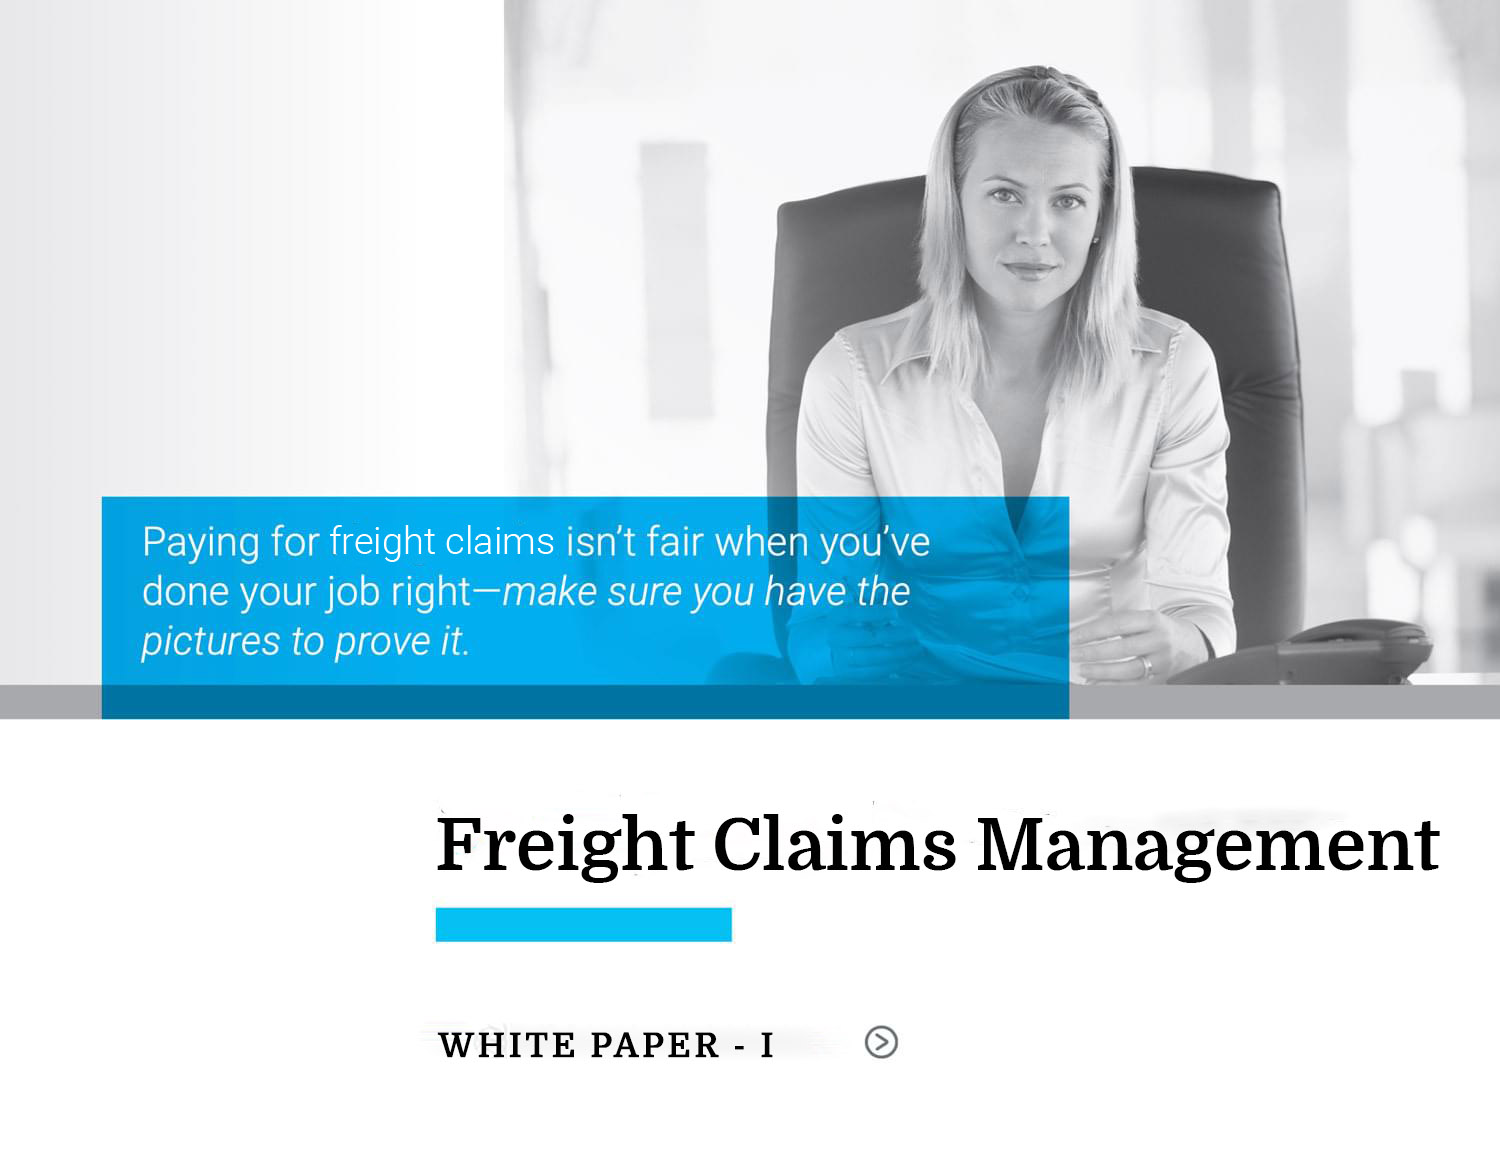 freight-management-1